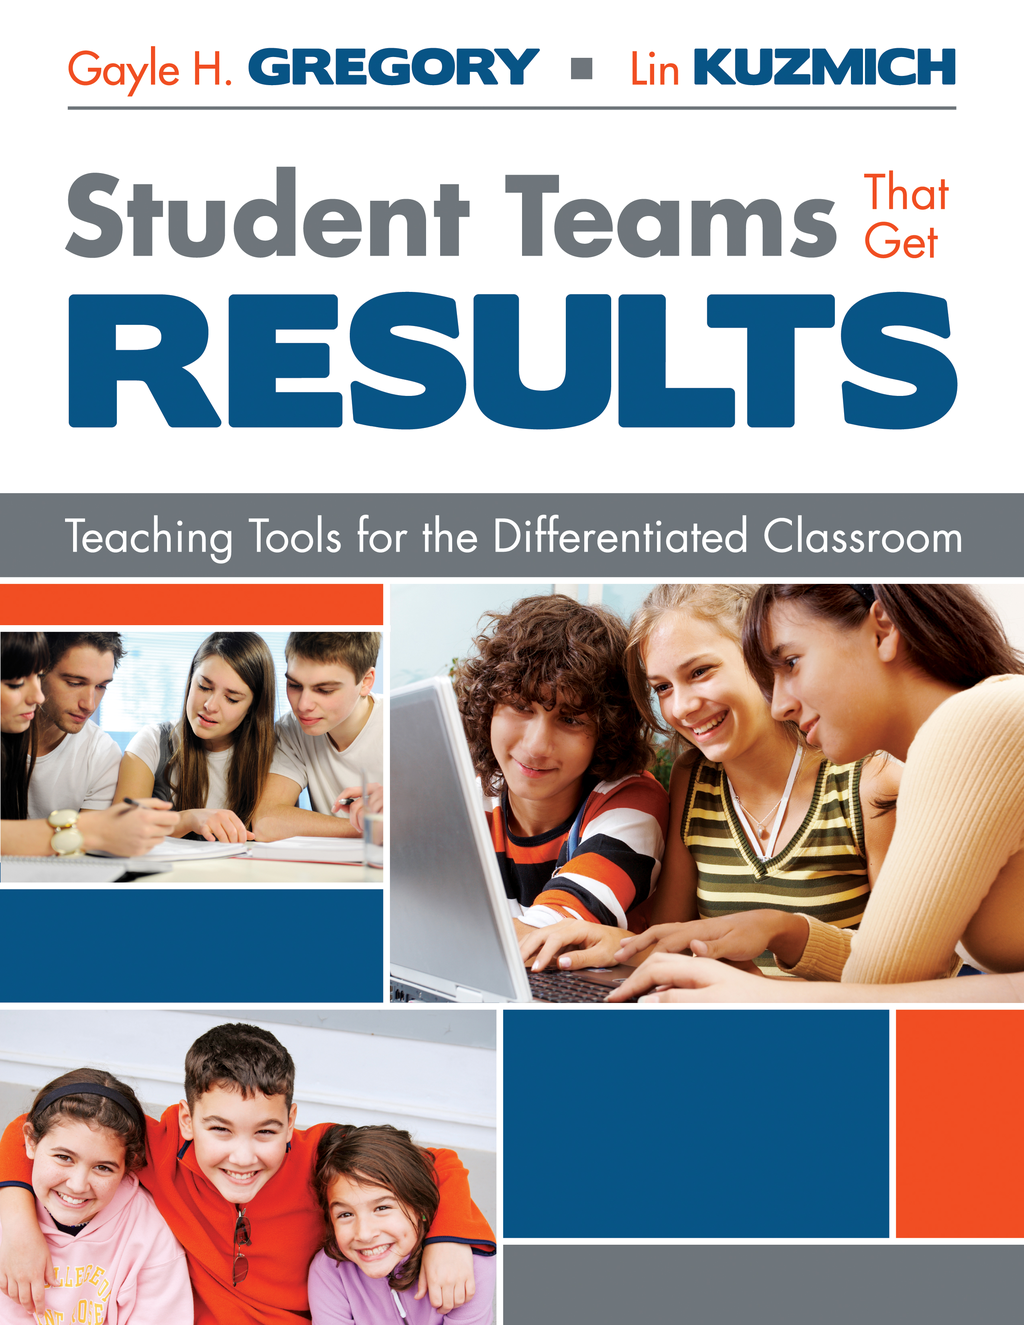 Linda (Lin) M. (Marlene) Kuzmich  Gayle H. Gregory - Student Teams That Get Results